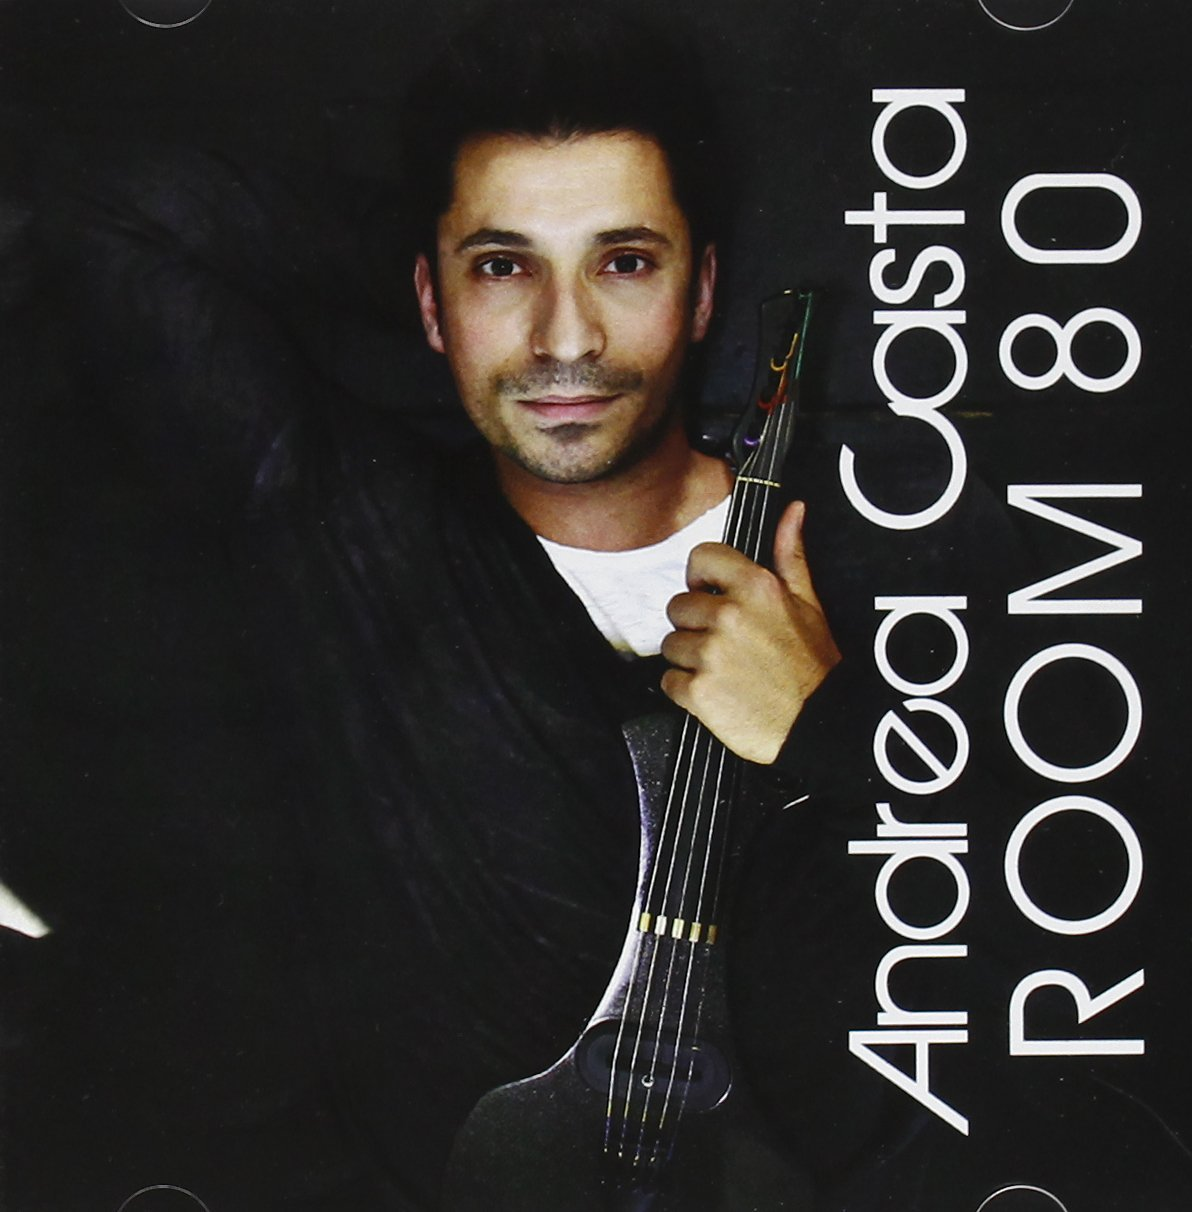 ANDREA COSTA - ROOM 80 (CD)